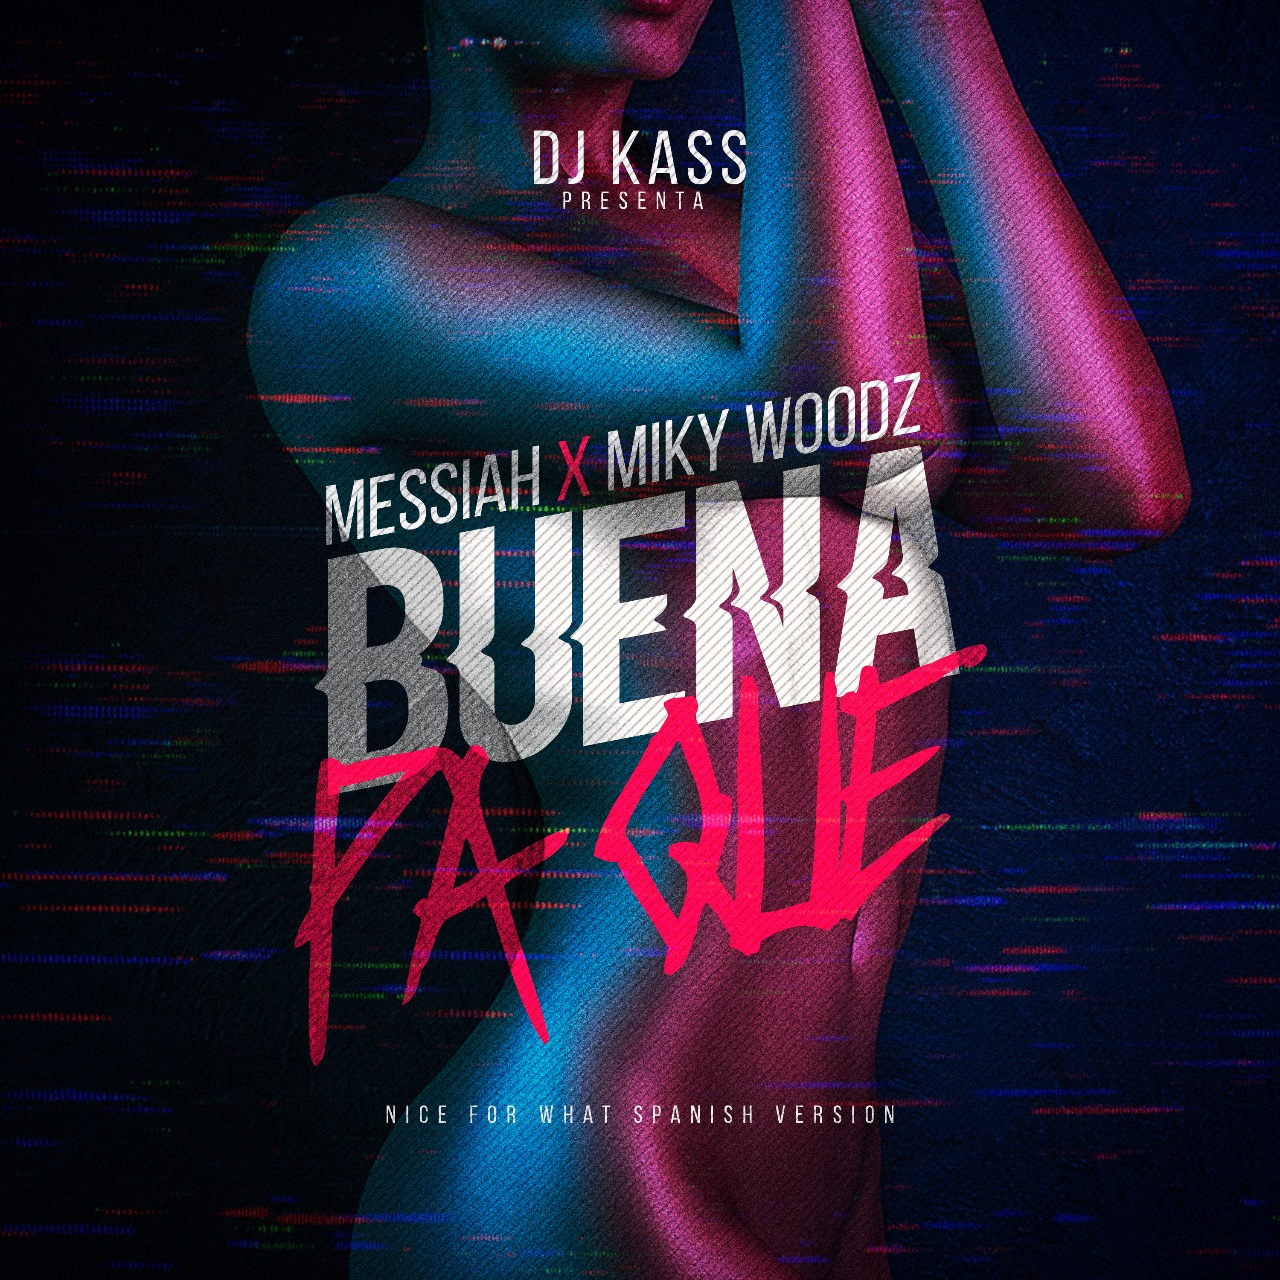 Dj Kass Ft. Messiah y Miky Woodz – Buena Pa Que Nice Fot What Spanish Version - Dj Kass Ft. Messiah y Miky Woodz – Buena Pa Que (Nice Fot What Spanish Version)